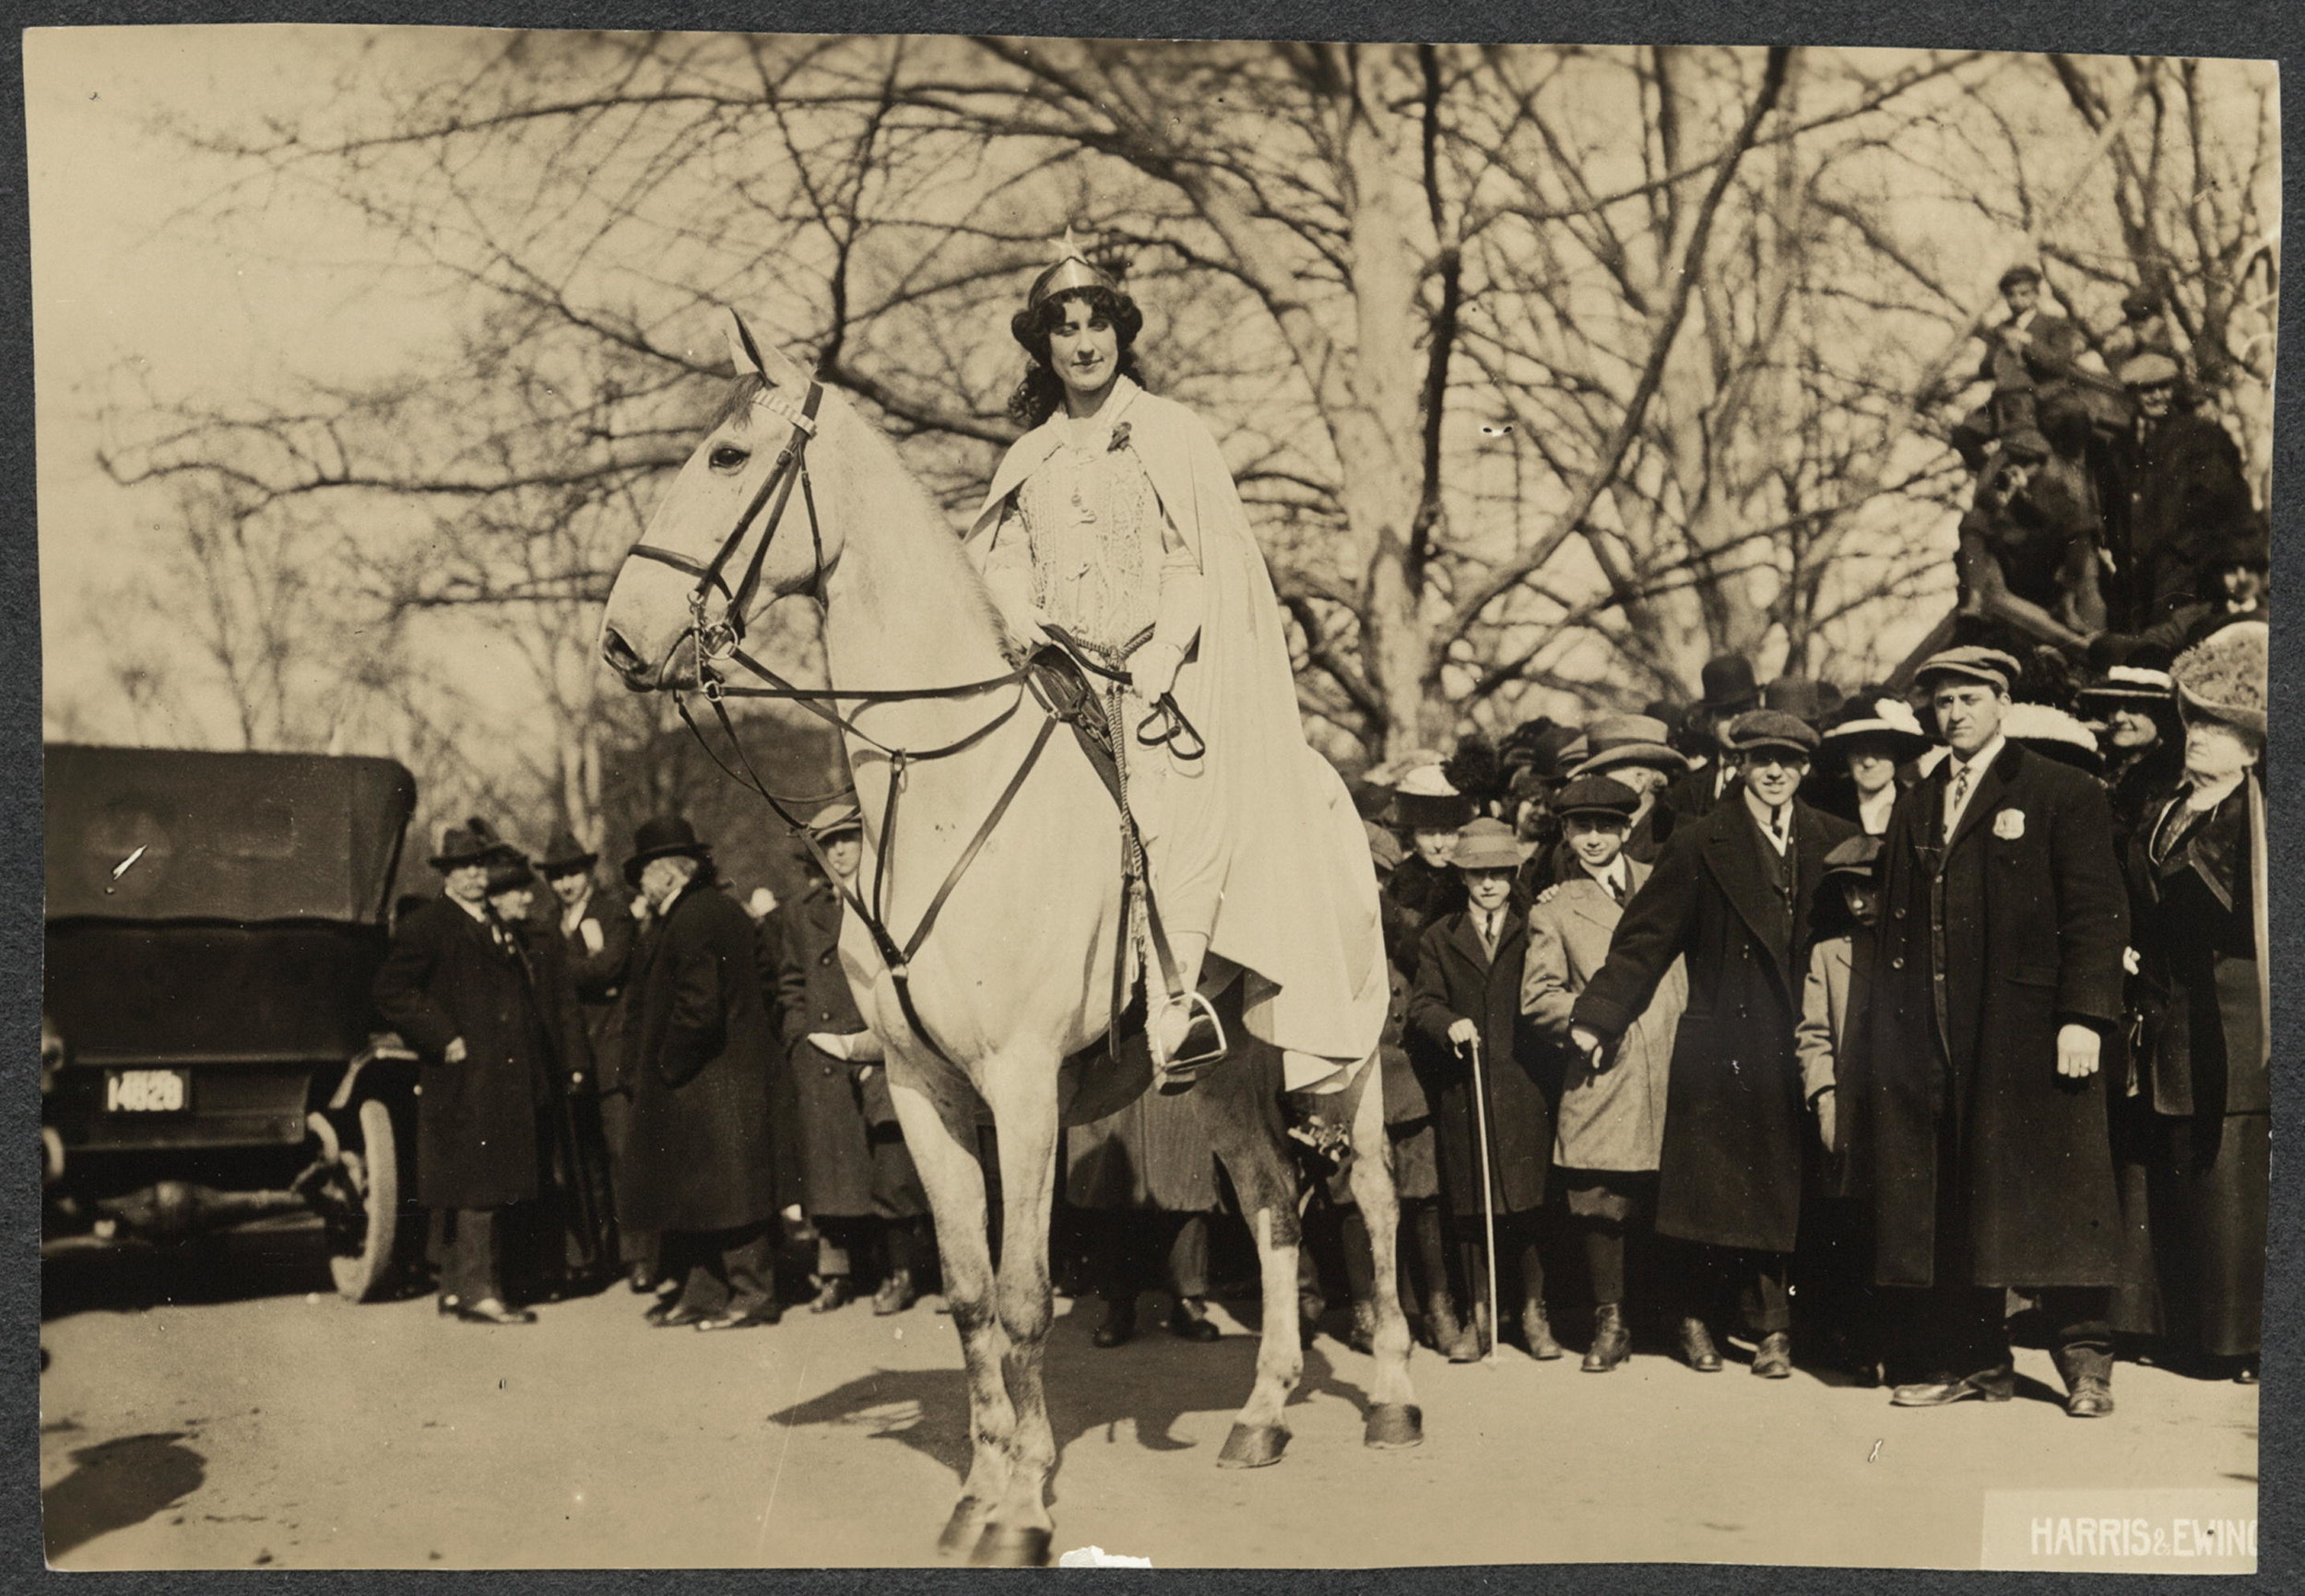 Inez Milholland Boissevain preparing to lead the March 3, 1913, suffrage parade in Washington, D.C.